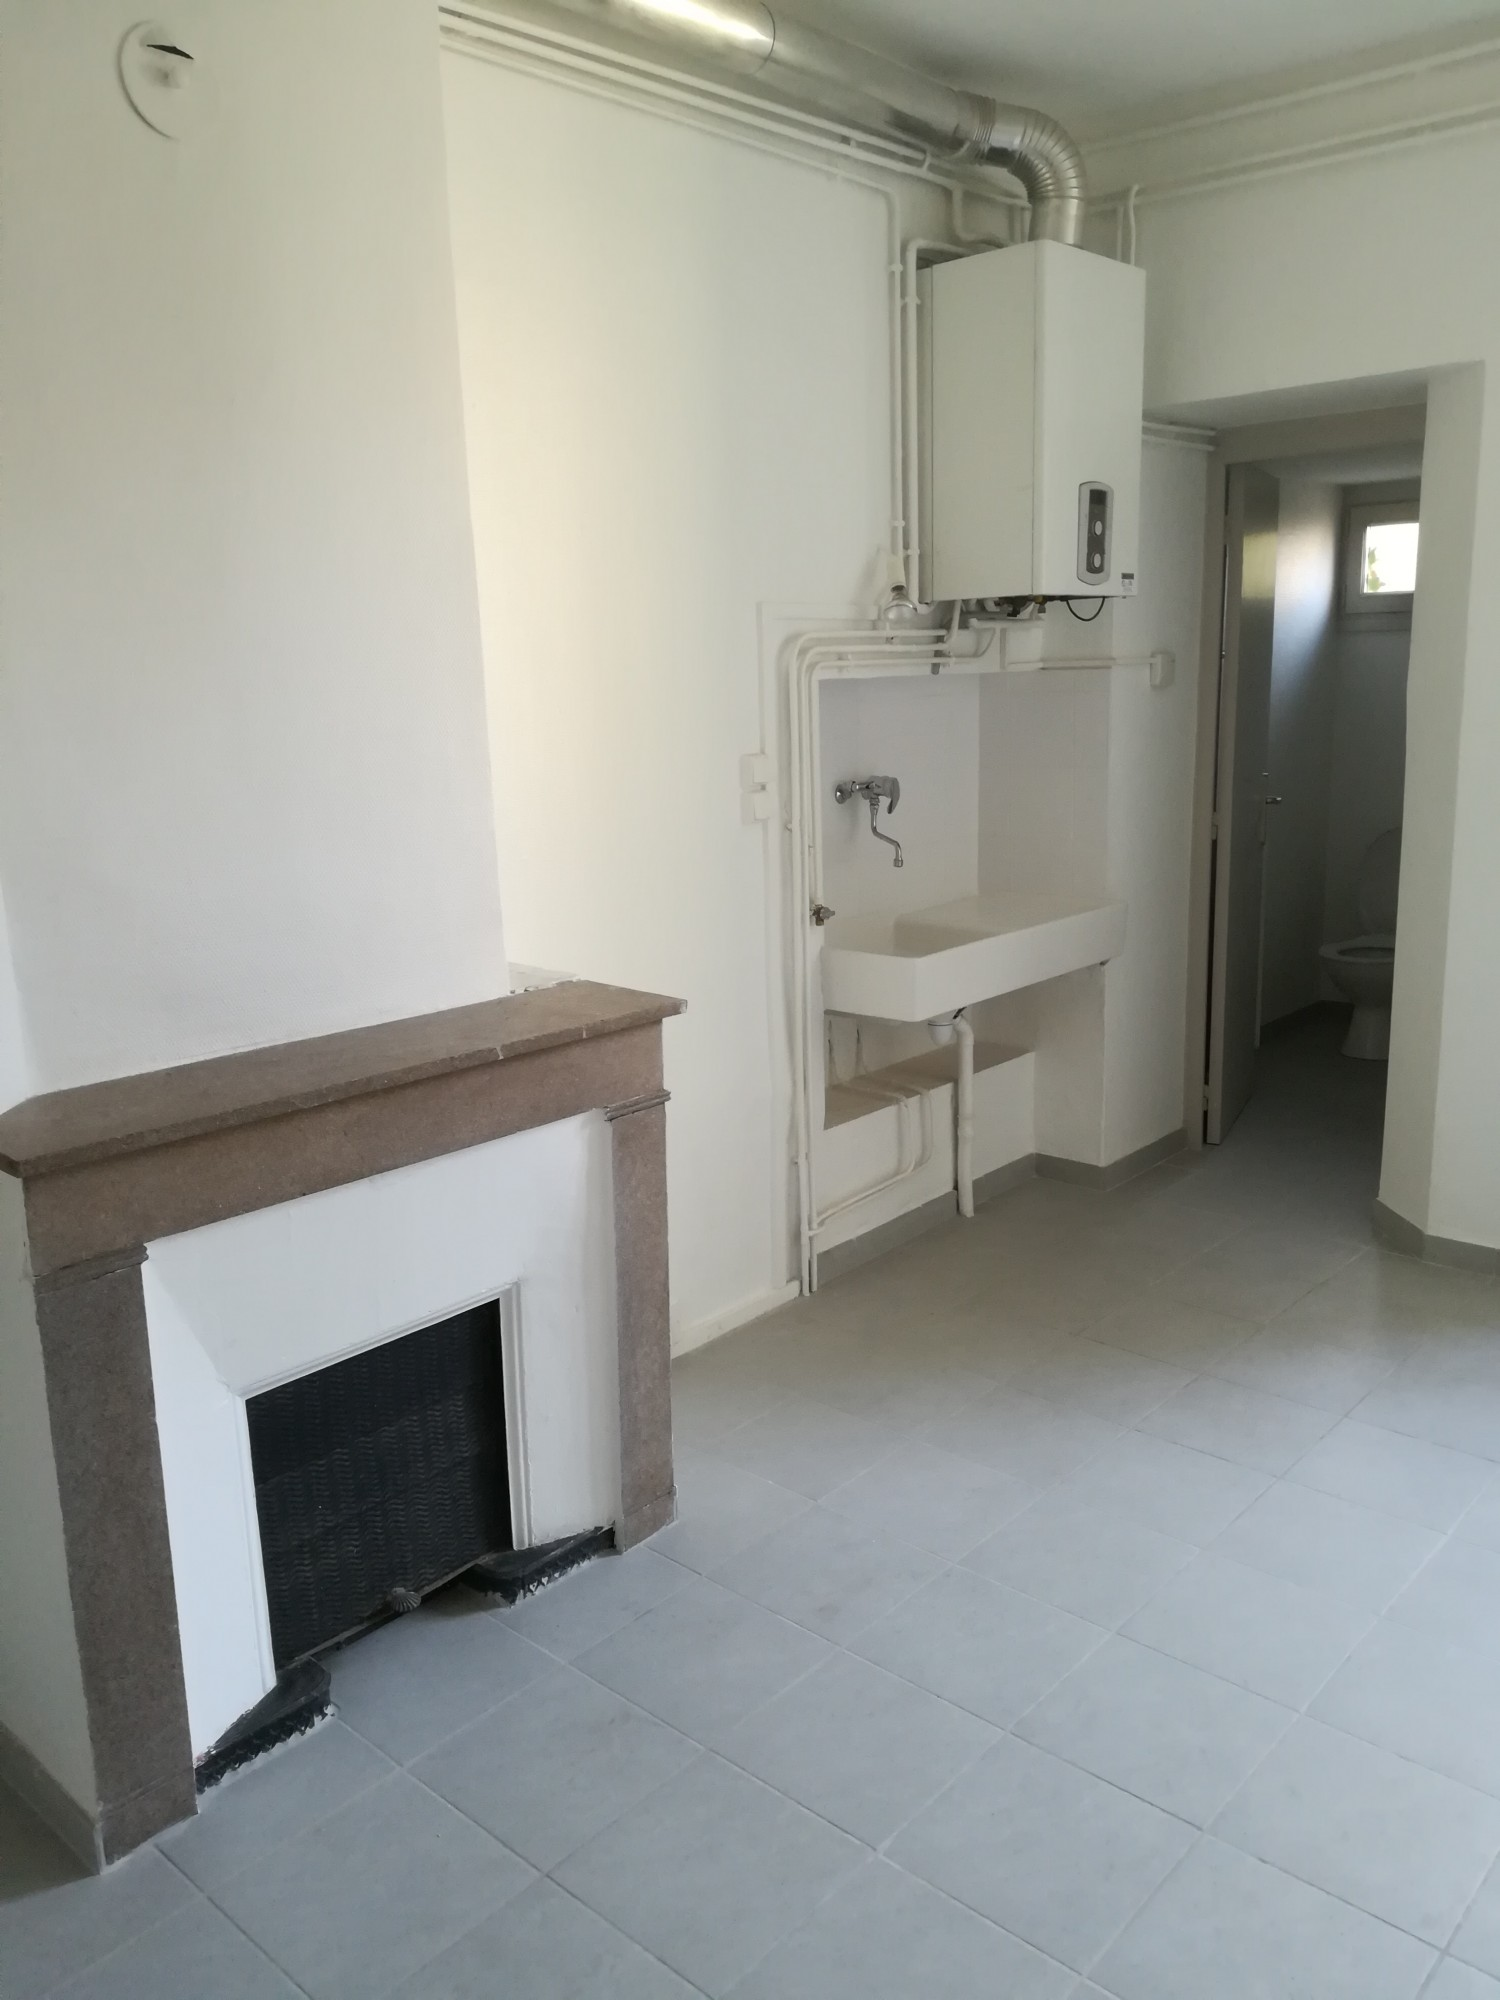 Studio a louer sur valence proche centre location agence for Agence immobiliere valence